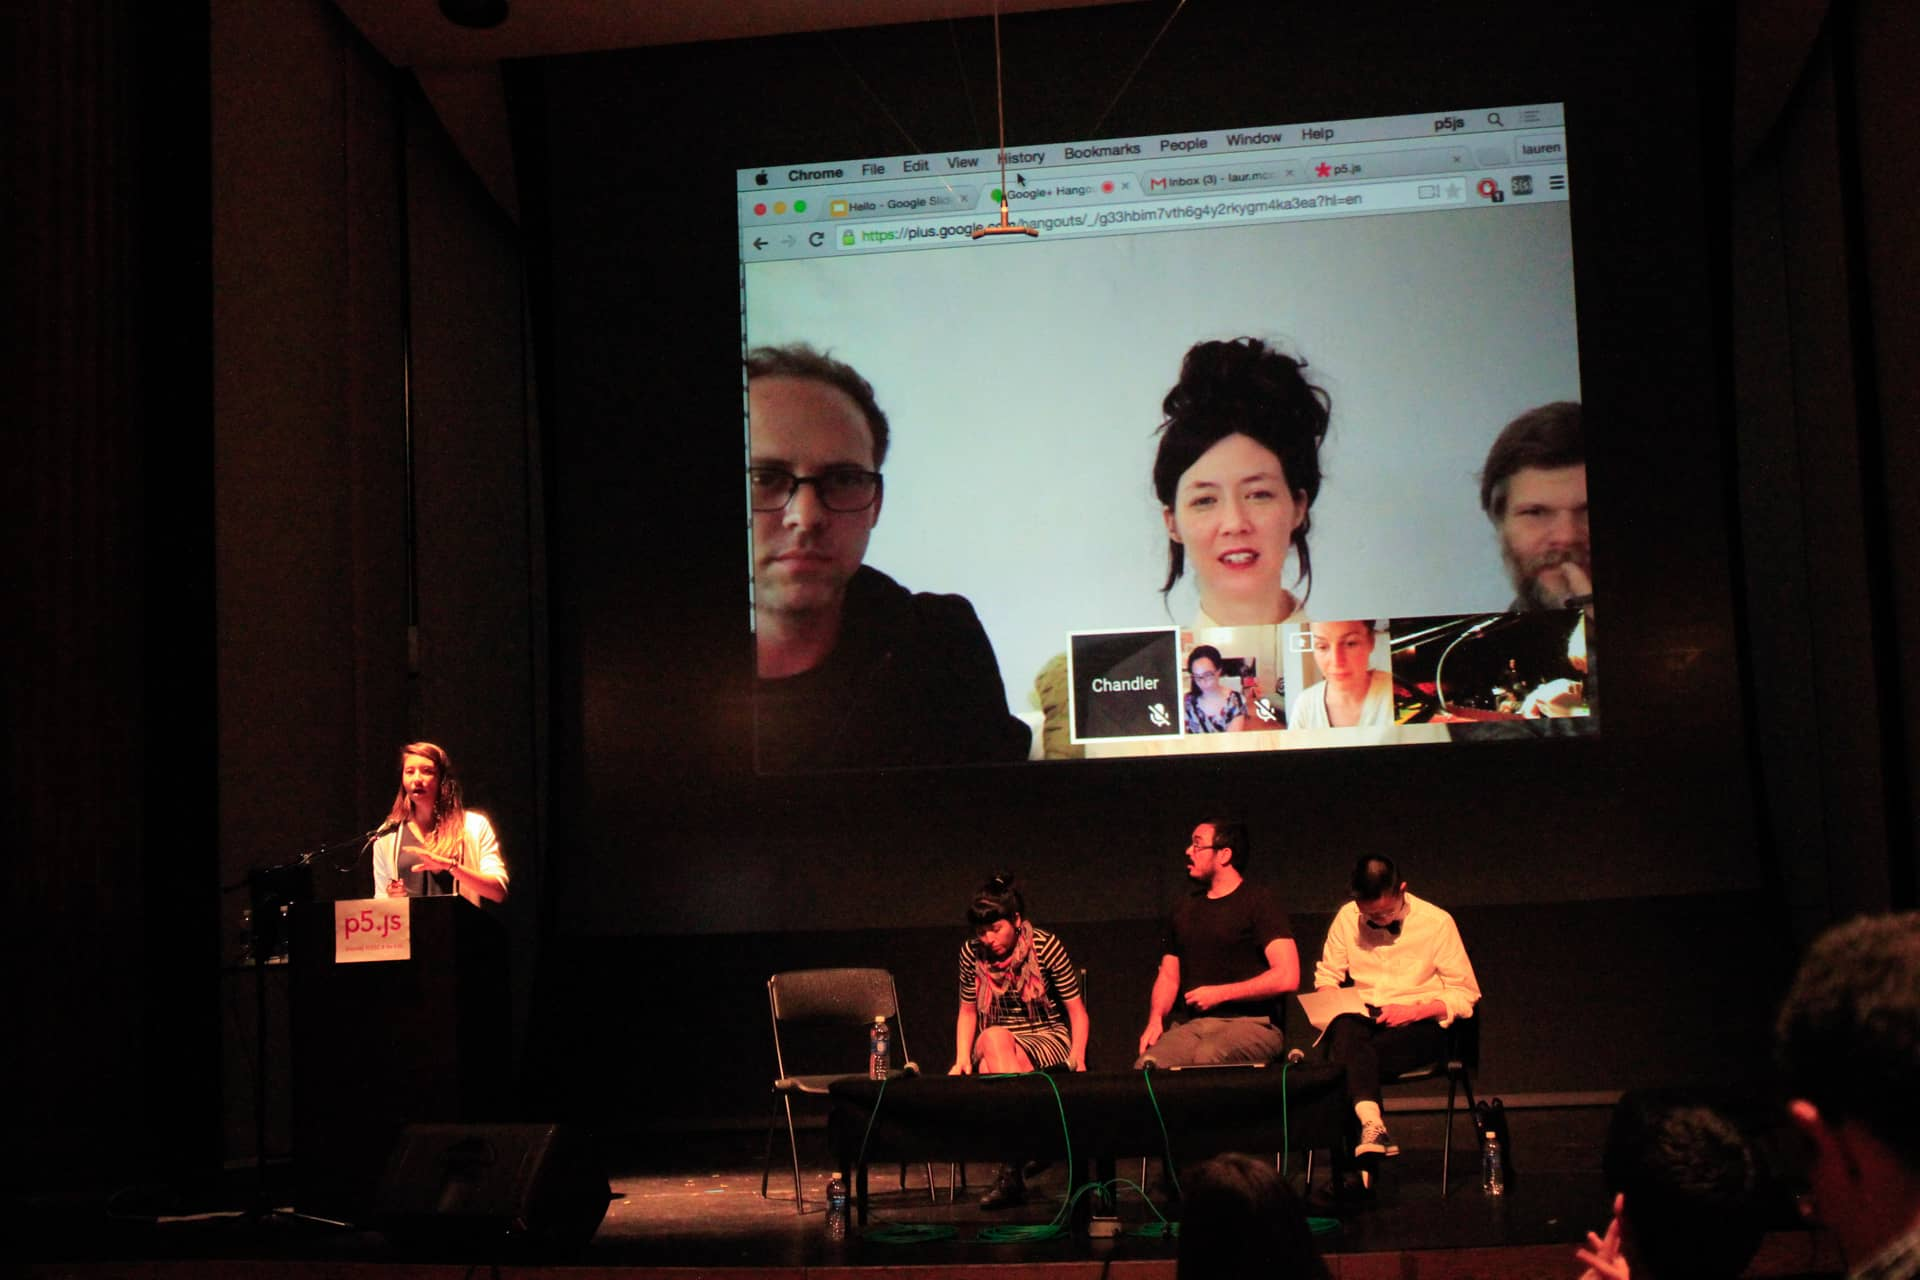 Woman speaks at a podium in an auditorium while three participants sit on the stage and another three are skyping in on the stage screen""